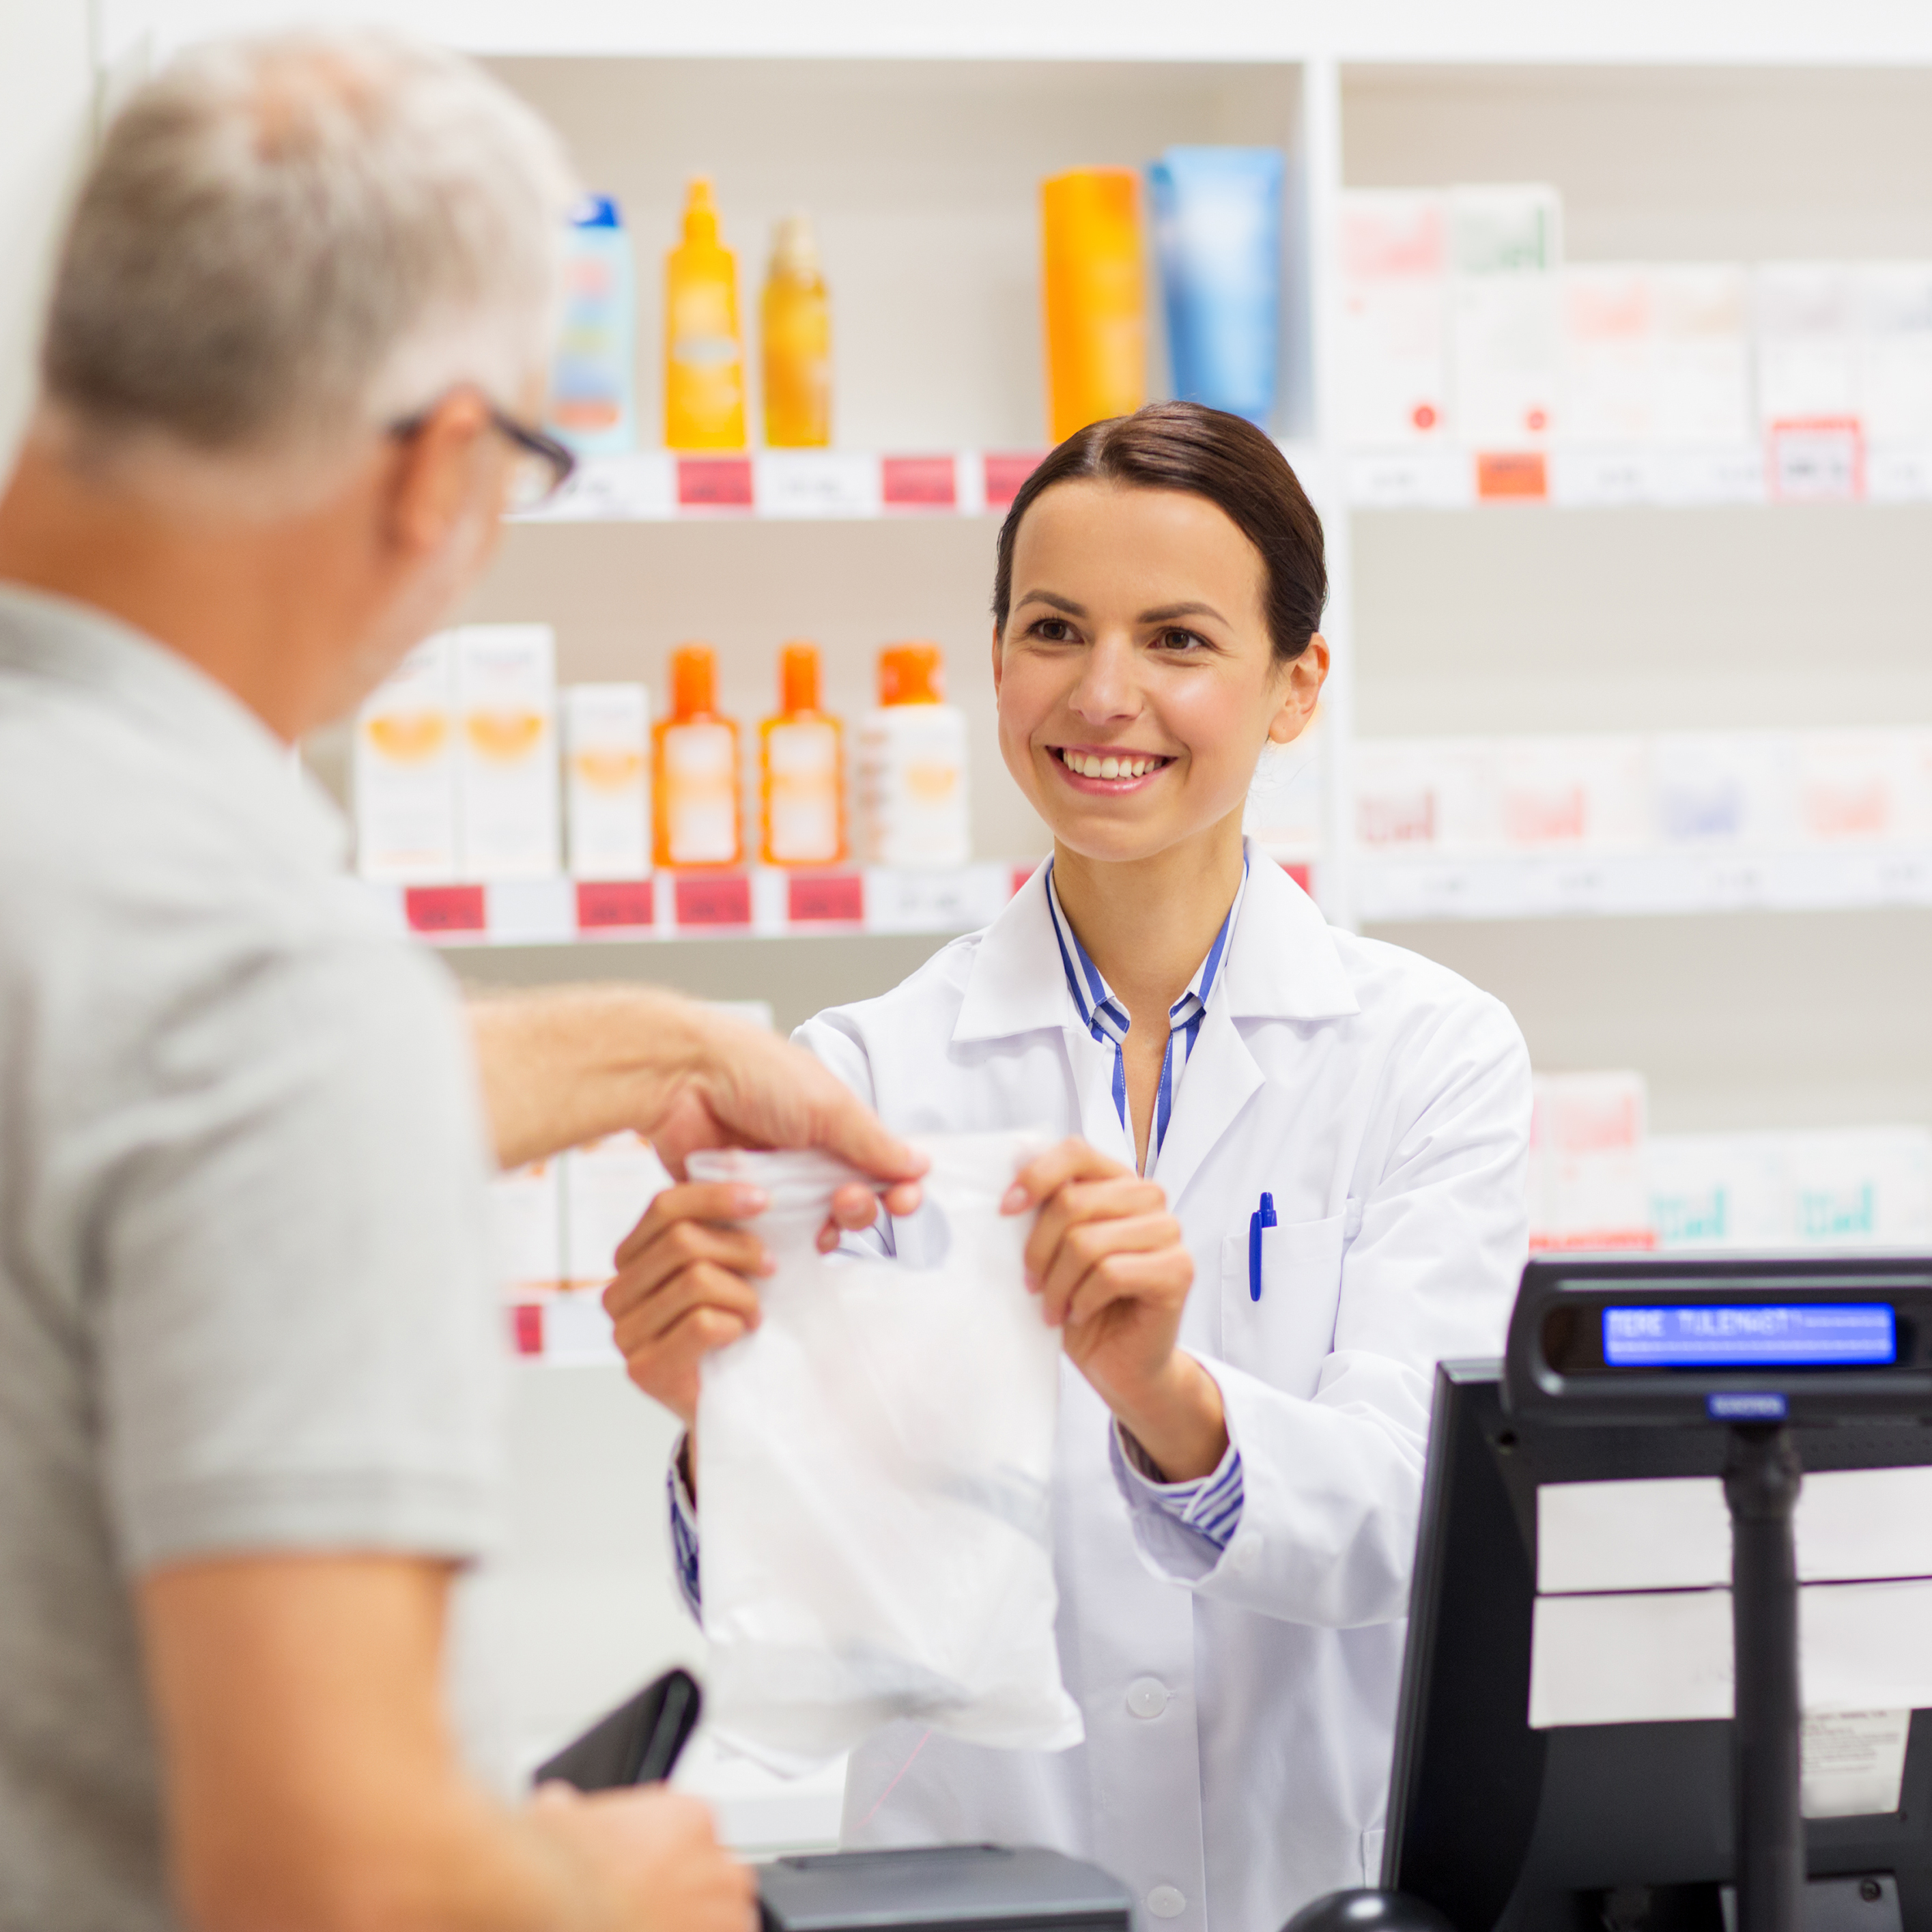 cash handling for pharmacies. Cash deposit